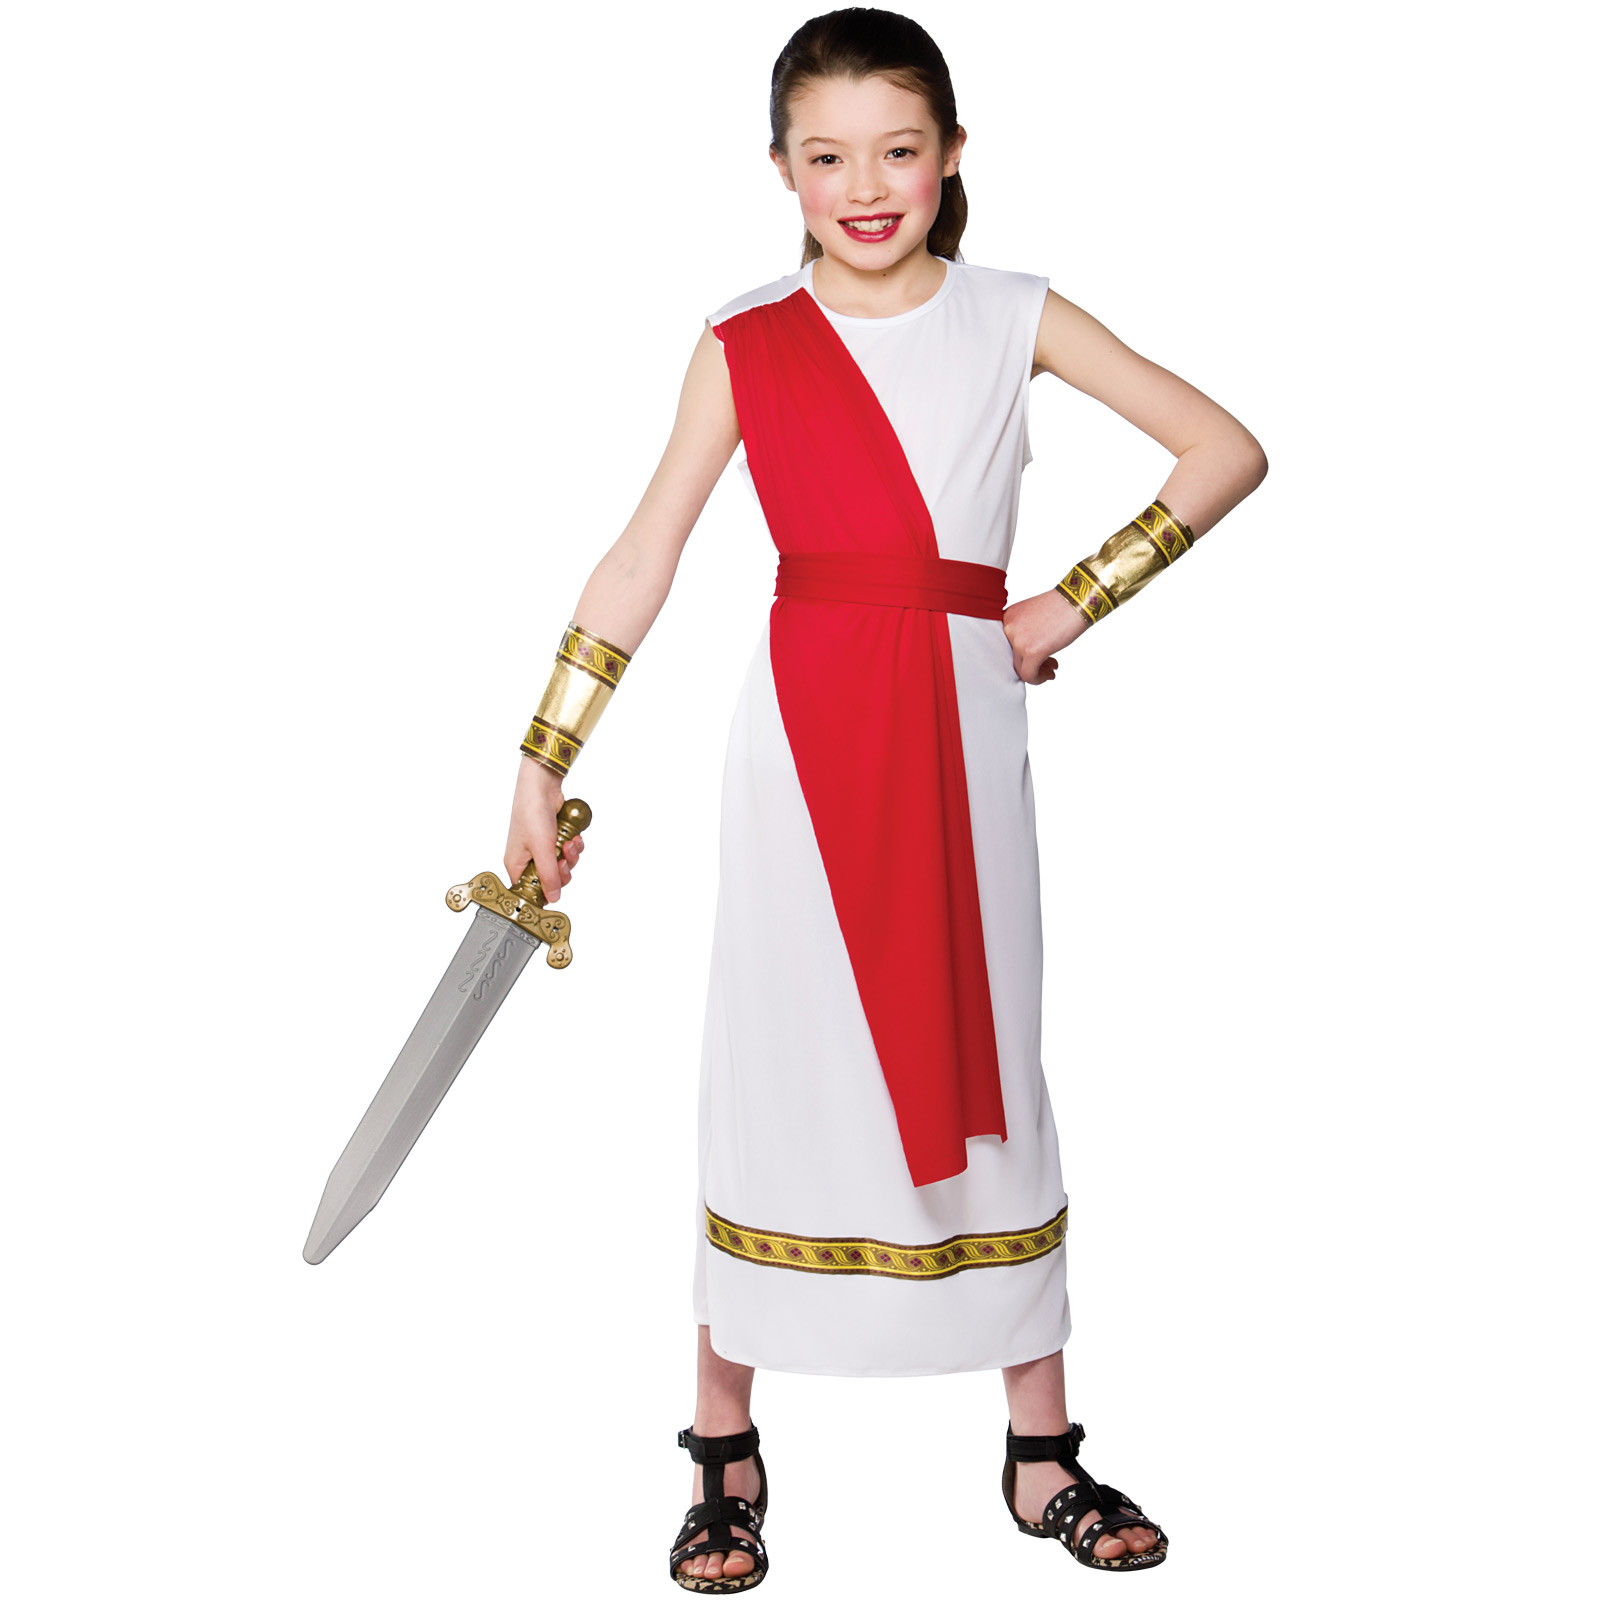 Child-Girls-Ancient-Roman-Girl-Costume-Fancy-Dress-Up-Role-Play-Party-Halloween